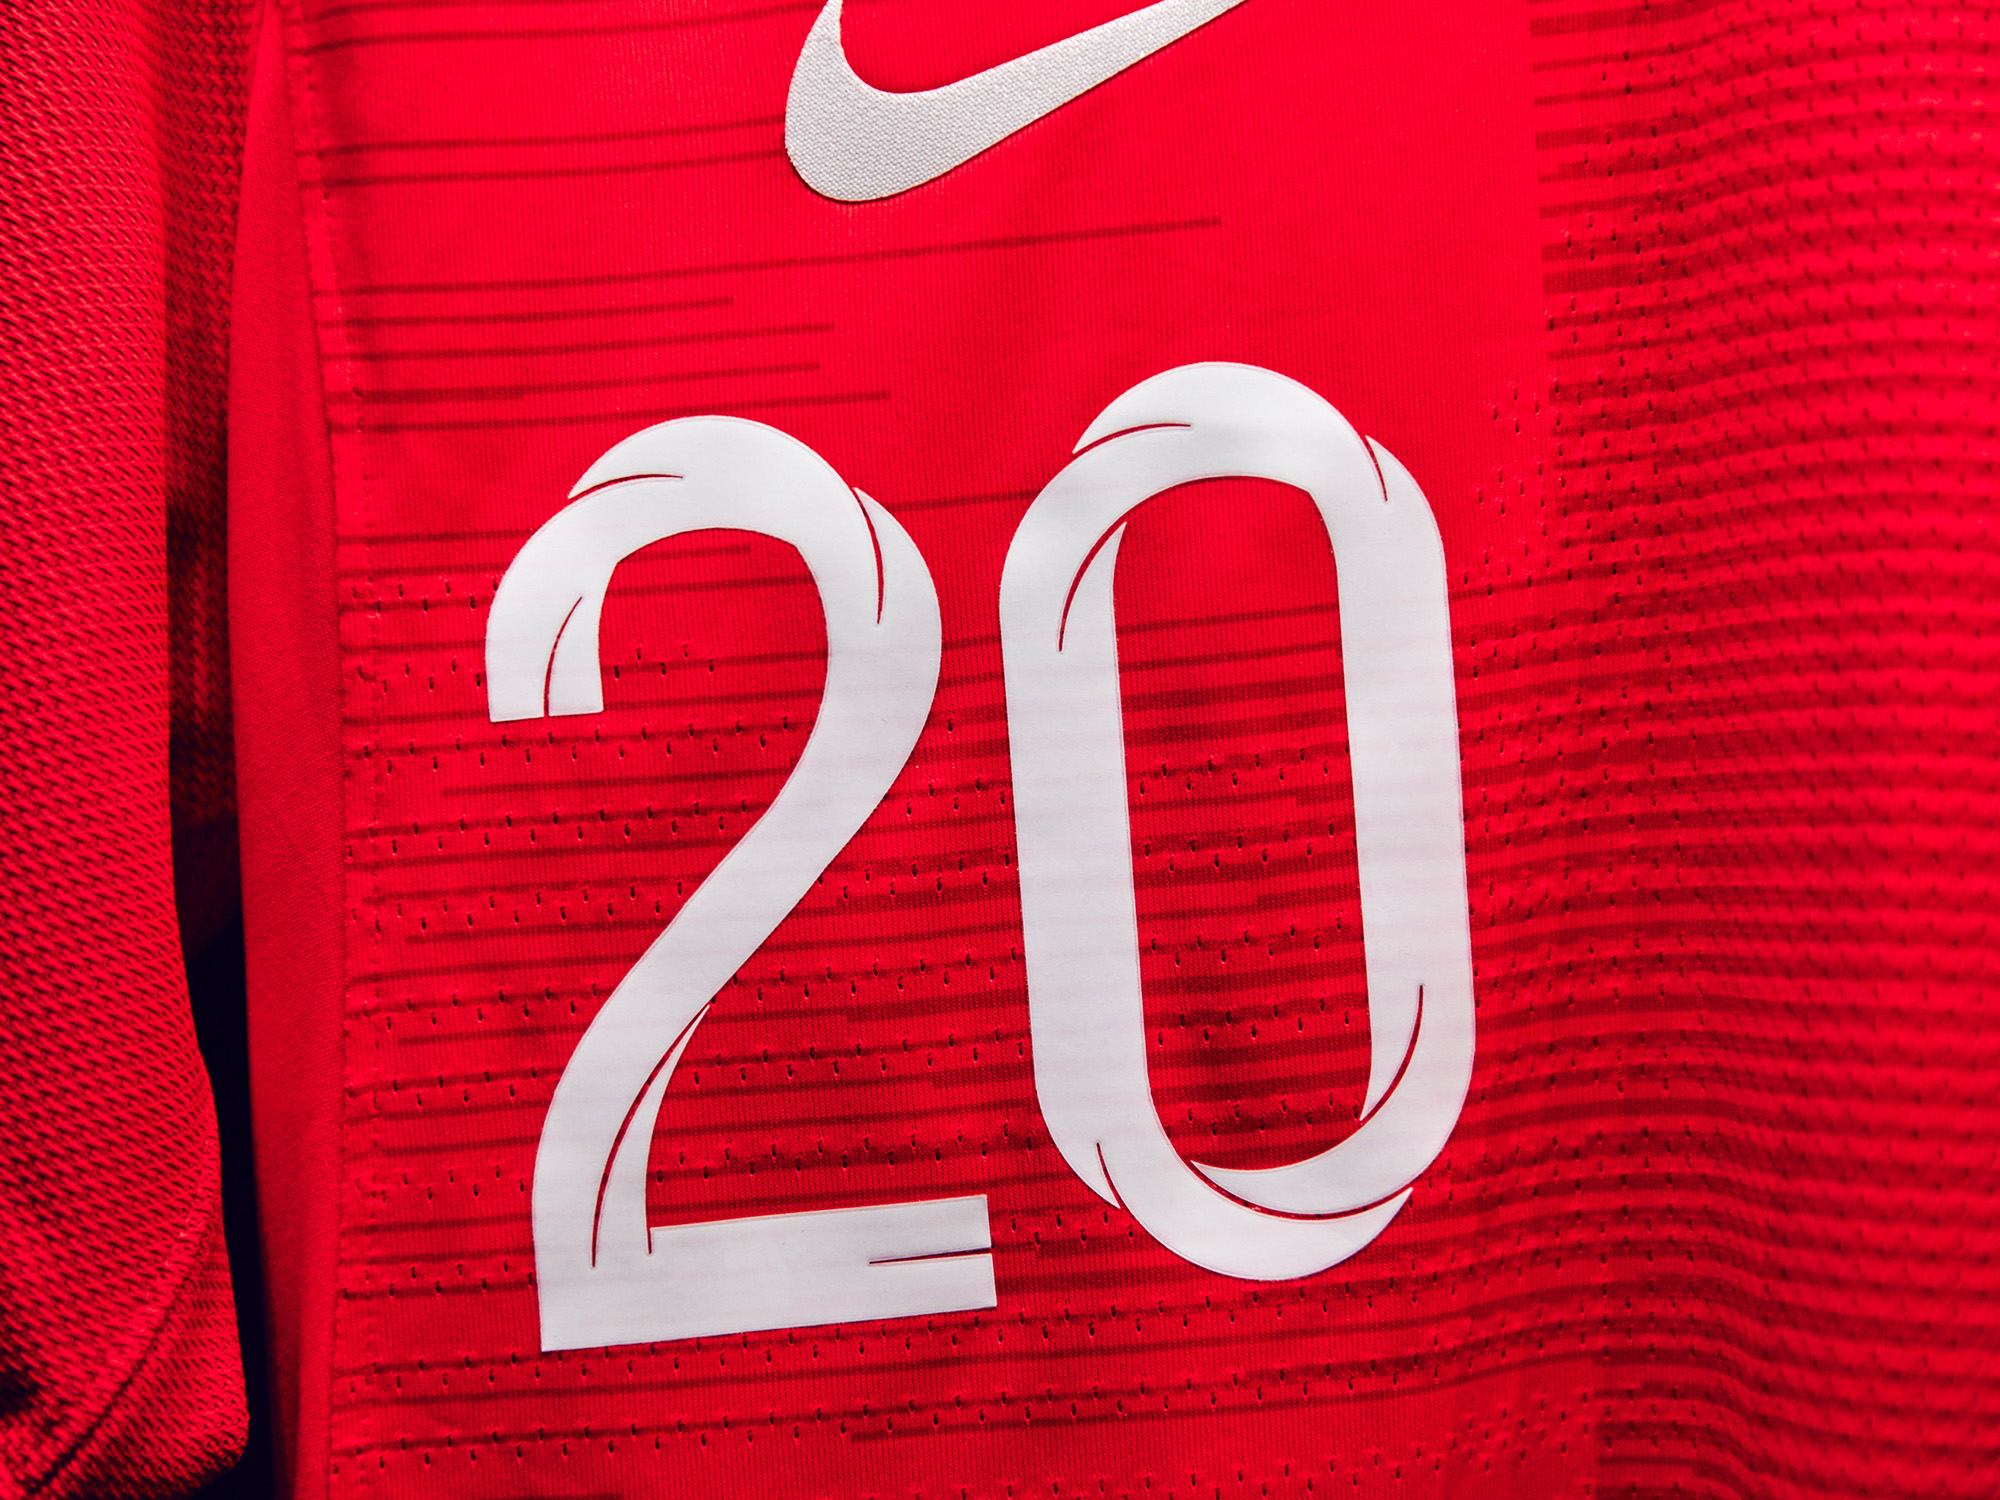 Nike-News-Football-Soccer-England-National-Team-Kit-13_77386